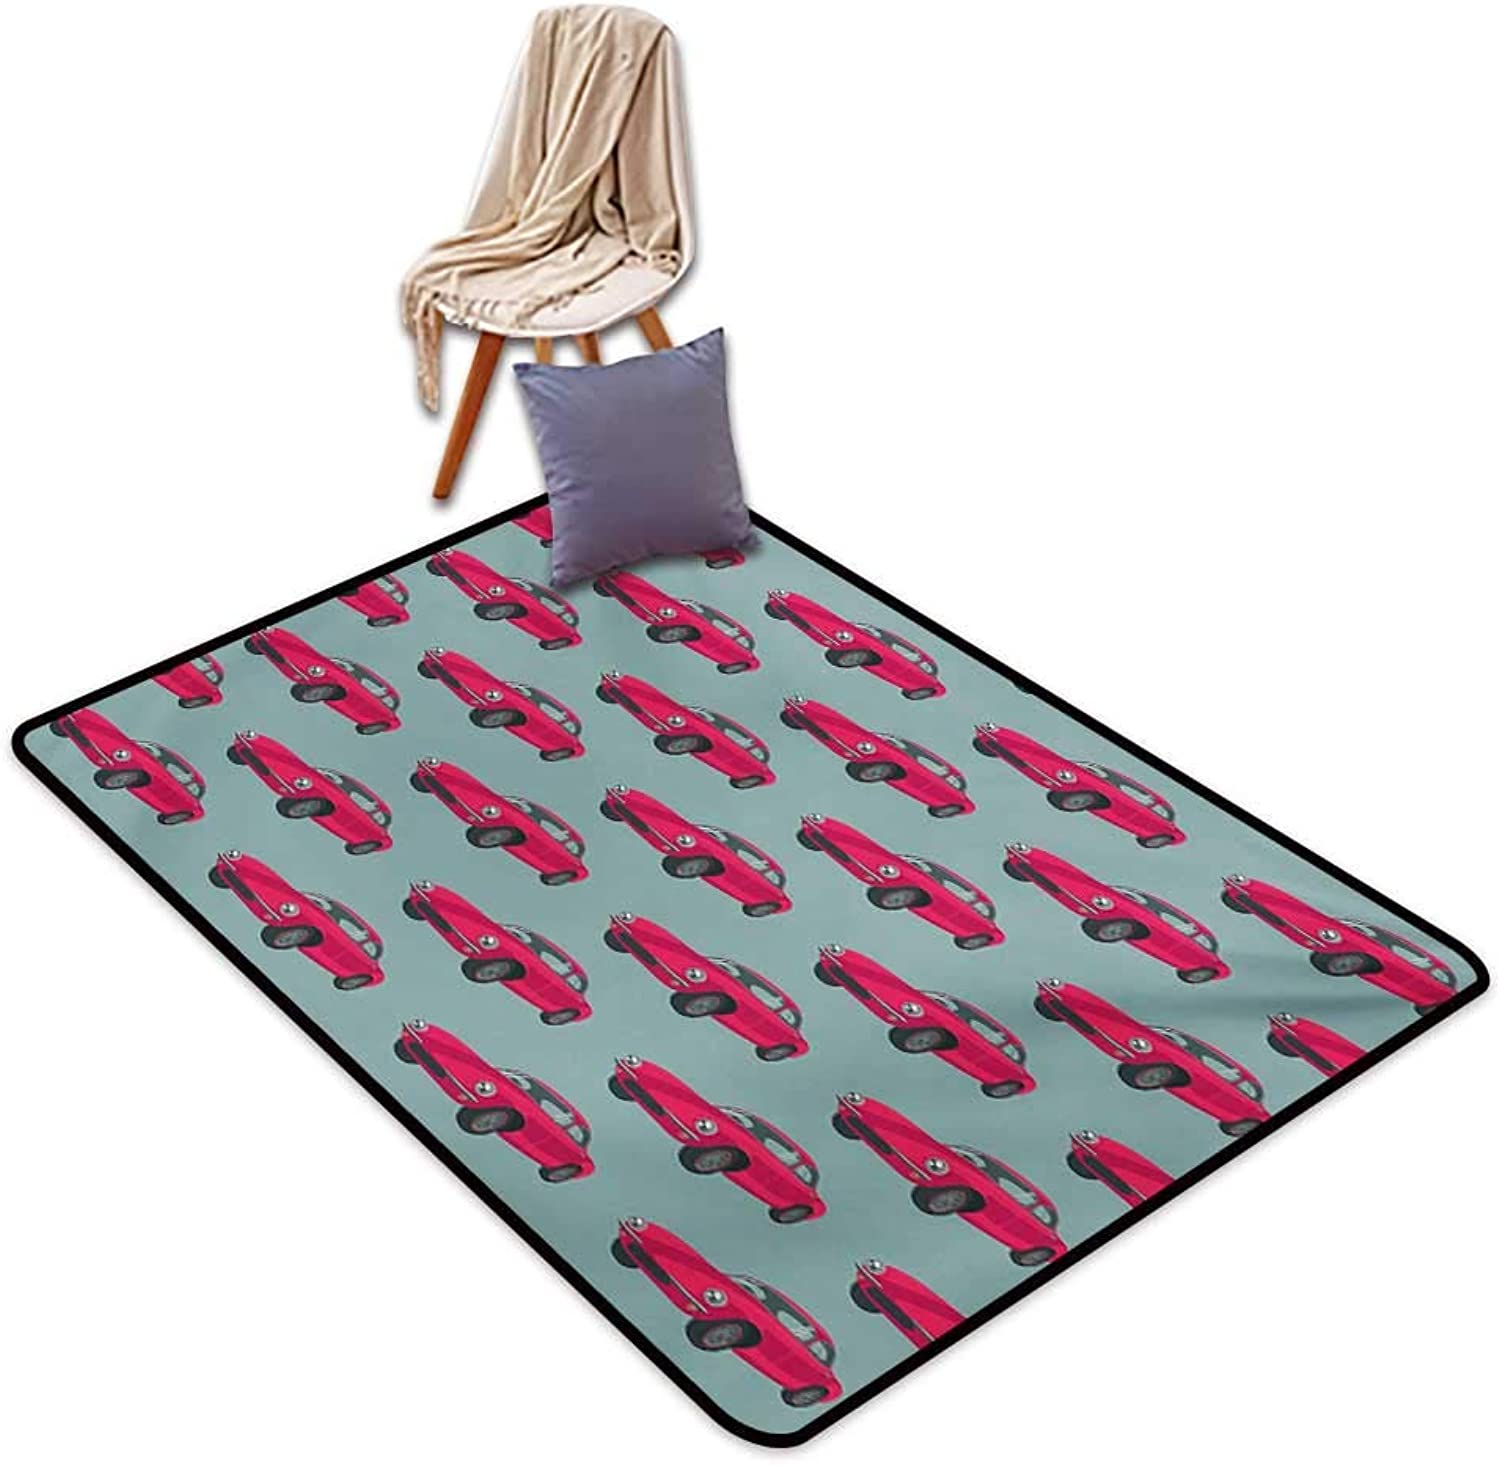 Cars Indoor Super Absorbs Mud Doormat Vintage Red Vehicles Retro Sports Cars from Sixties Fifties Driving Speeding Water Absorption, Anti-Skid and Oil Proof 48  Wx59 L Pink Slate bluee